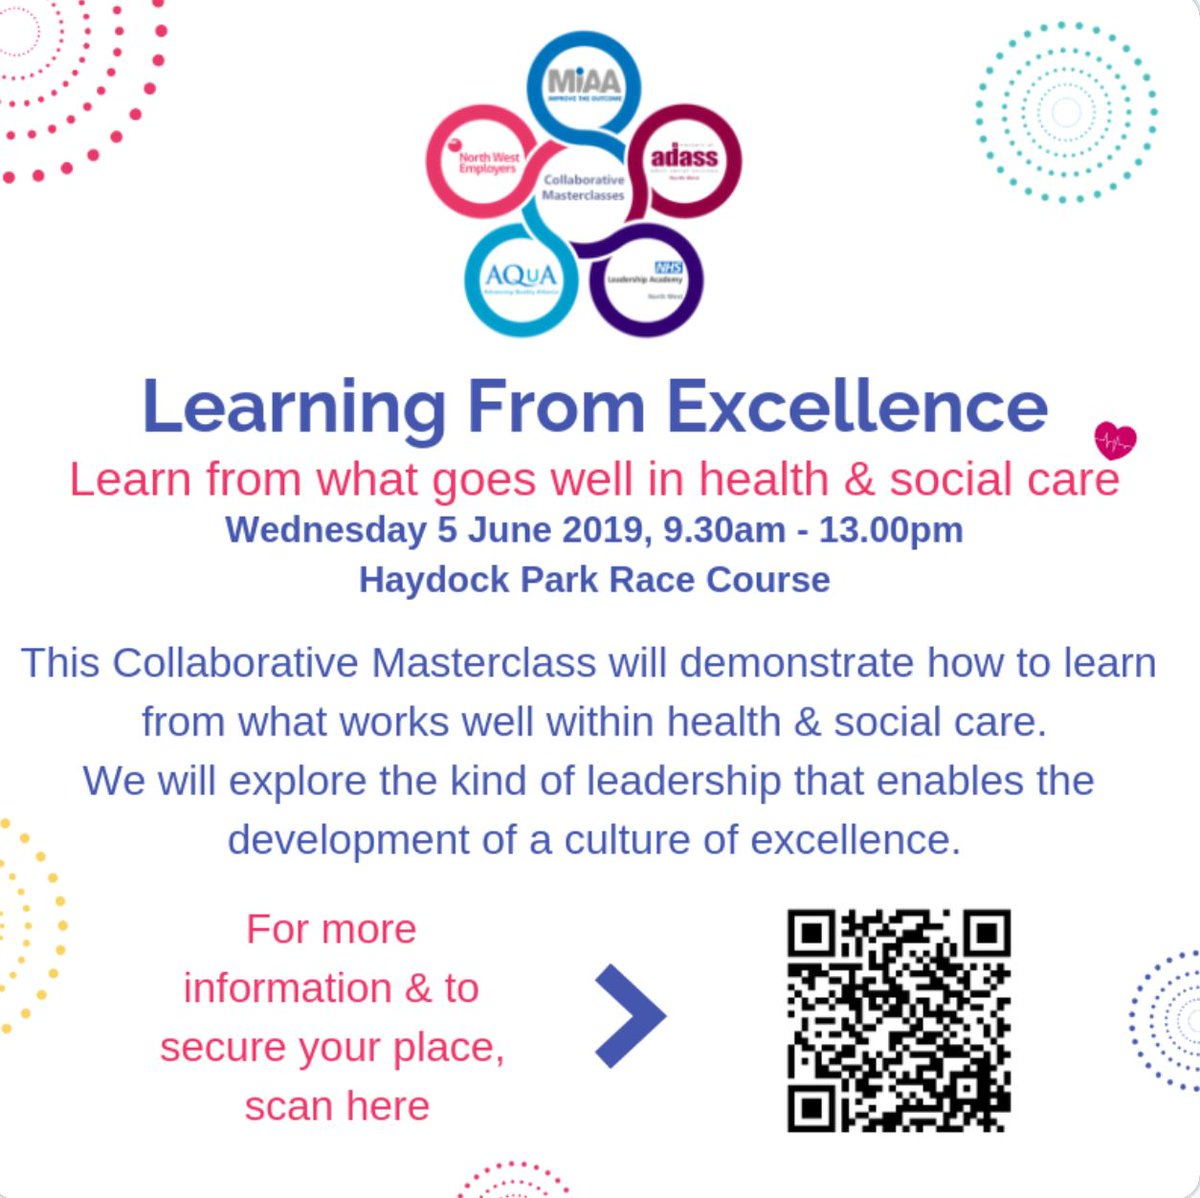 test Twitter Media - Join us Wed 5 June for another #CollaborativeNW Masterclass  Exploring what works well in #health & #socialCare to develop a culture of excellence!  Use the link below to secure a place https://t.co/mKYvJuwcV8 @NWEmployers @AQuA_NHS @nhsnwla @NWADASS https://t.co/rXTPpih07D